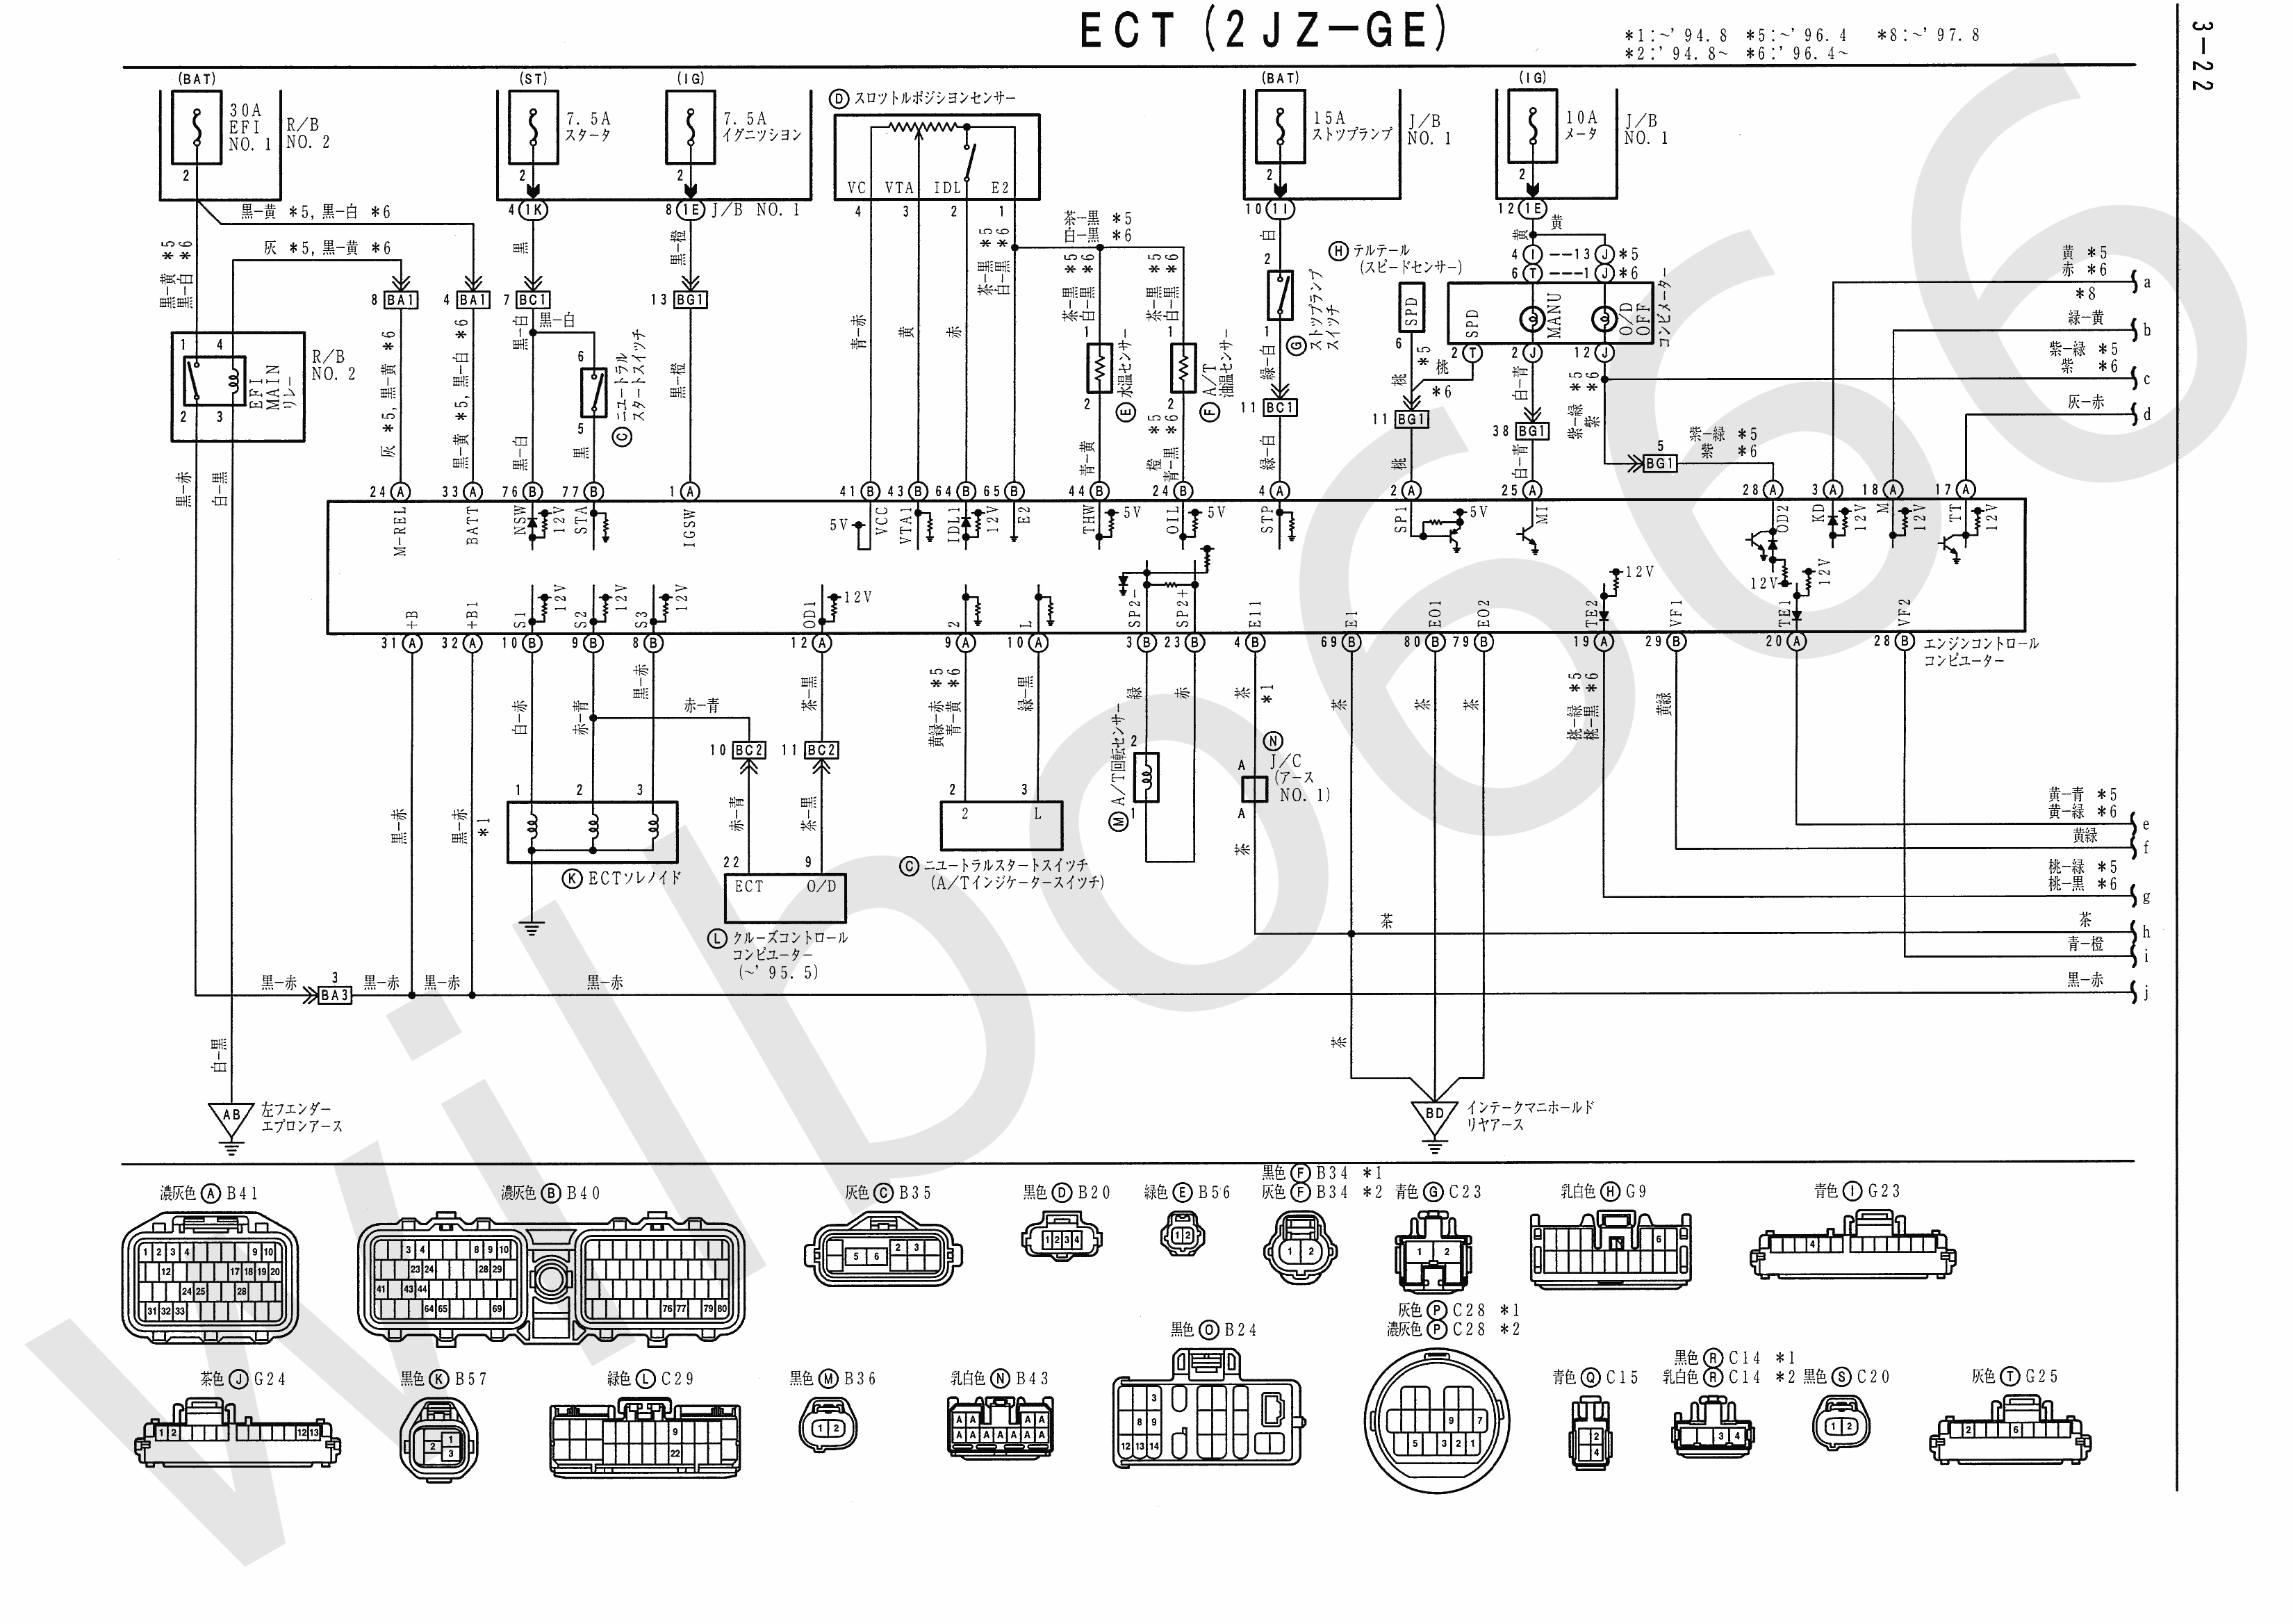 1990 Toyota Supra Electrical Car Wiring Diagram Wiring Diagram